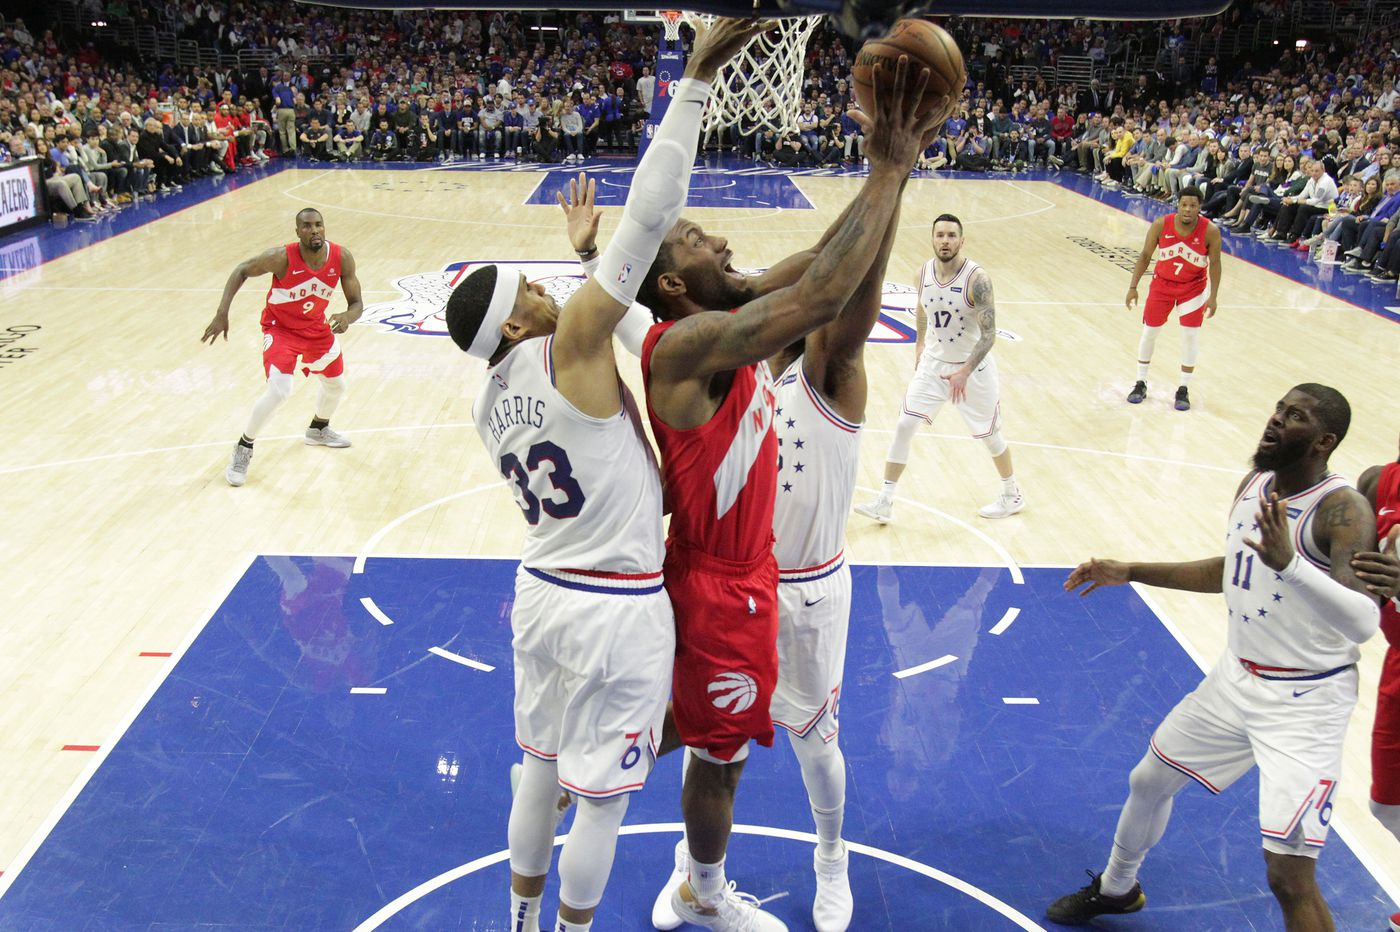 c137c0e4d34 NBA playoffs: Raptors' Kawhi Leonard expects Sixers' best shot in Game 6